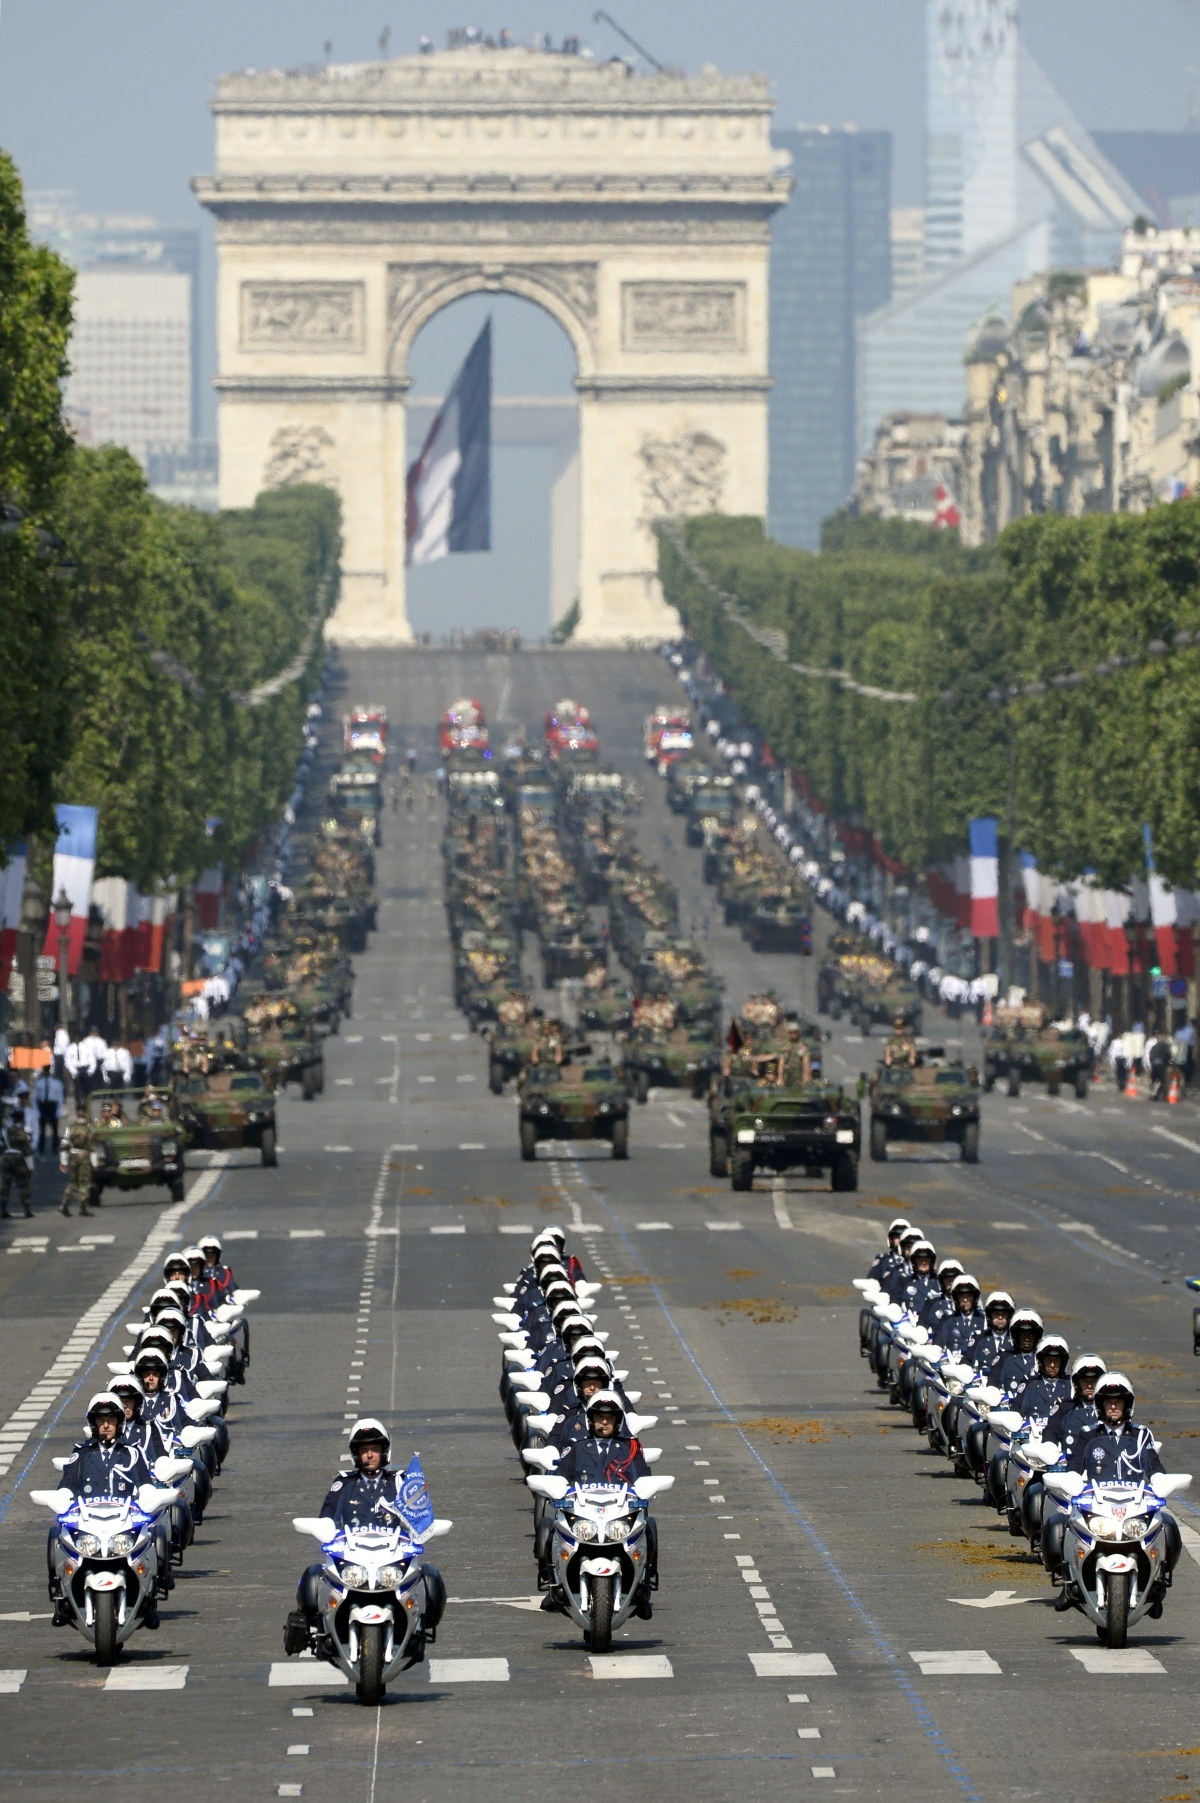 Bastille Day 14 July French National Holiday